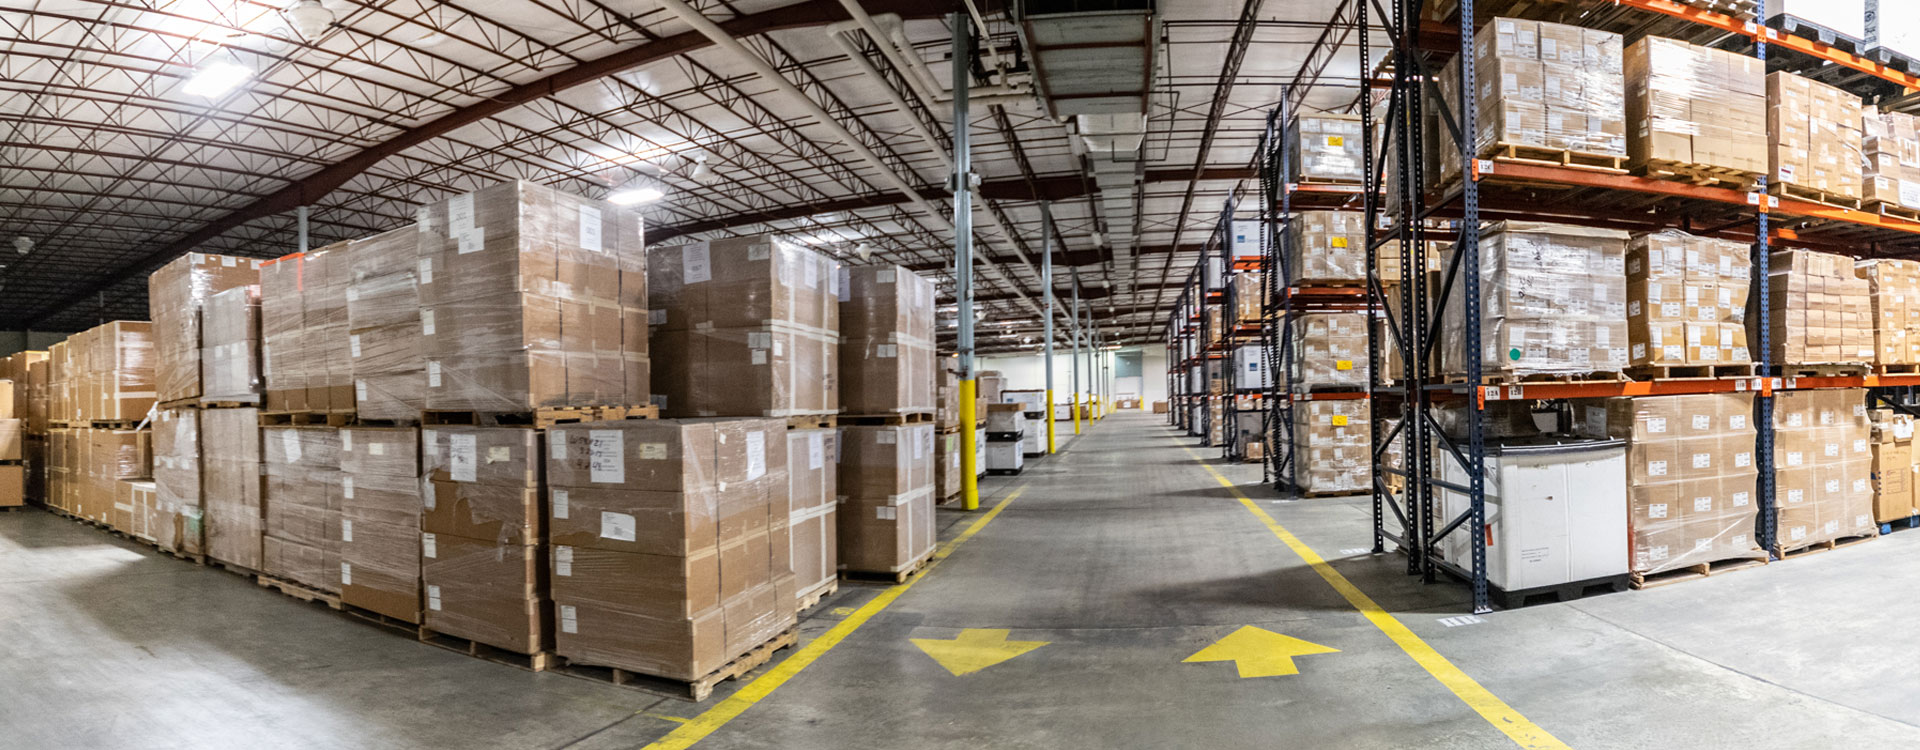 image of commercial warehouse property